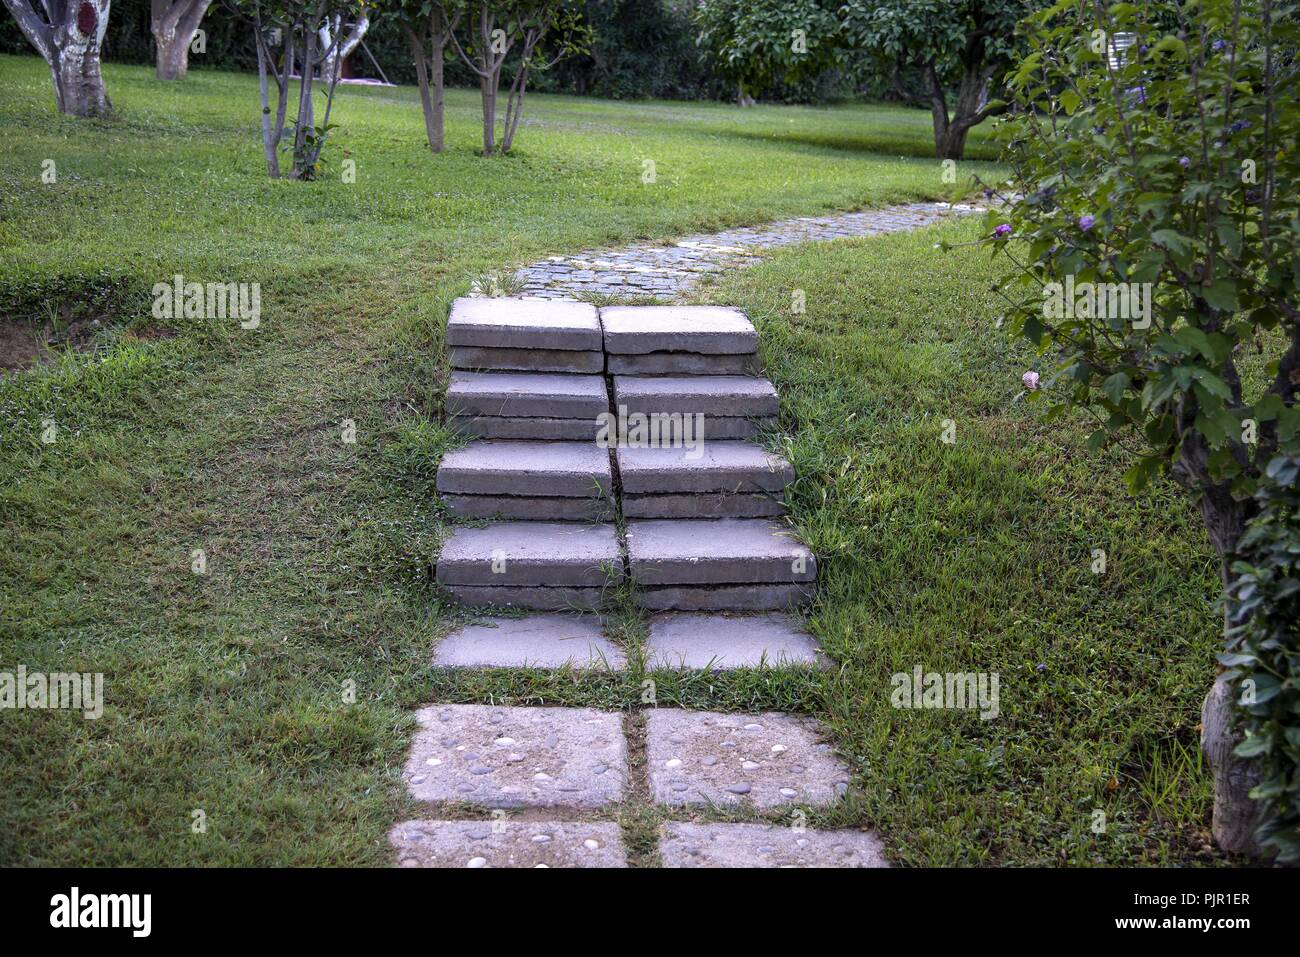 Stone And Wooden Outdoor Stairs In The Park Stock Photo ...